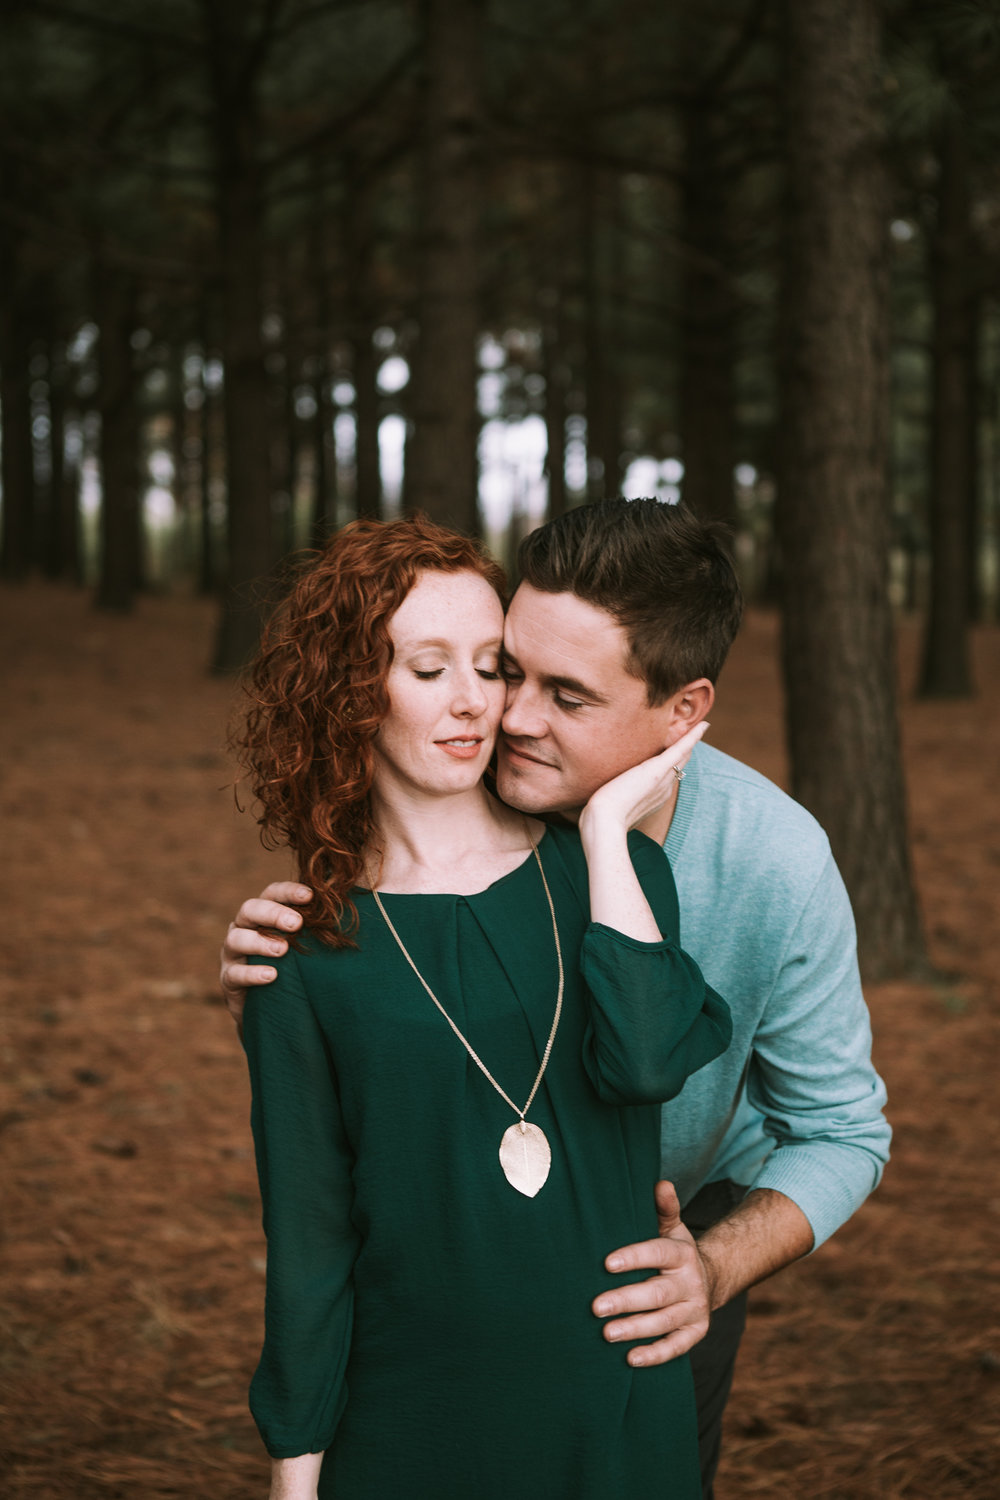 Richmond Kentucky Engagement Photographer - Ariana Jordan Photography -39.jpg